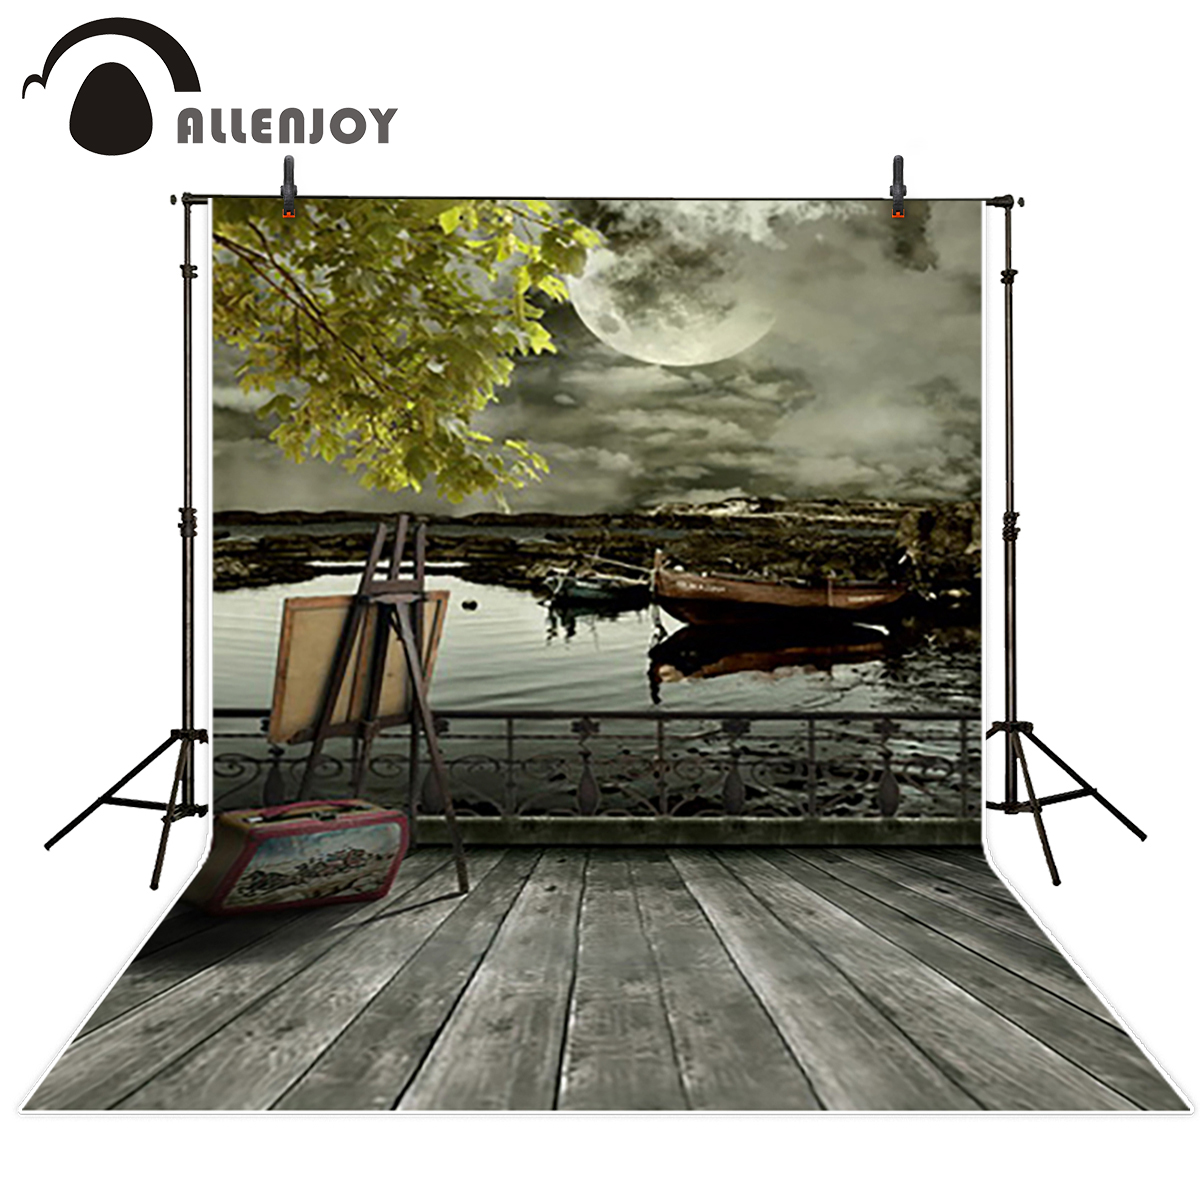 Allenjoy background for photographic studio Ancient River boat desolate original design photography backdrop custom vinyl fabric